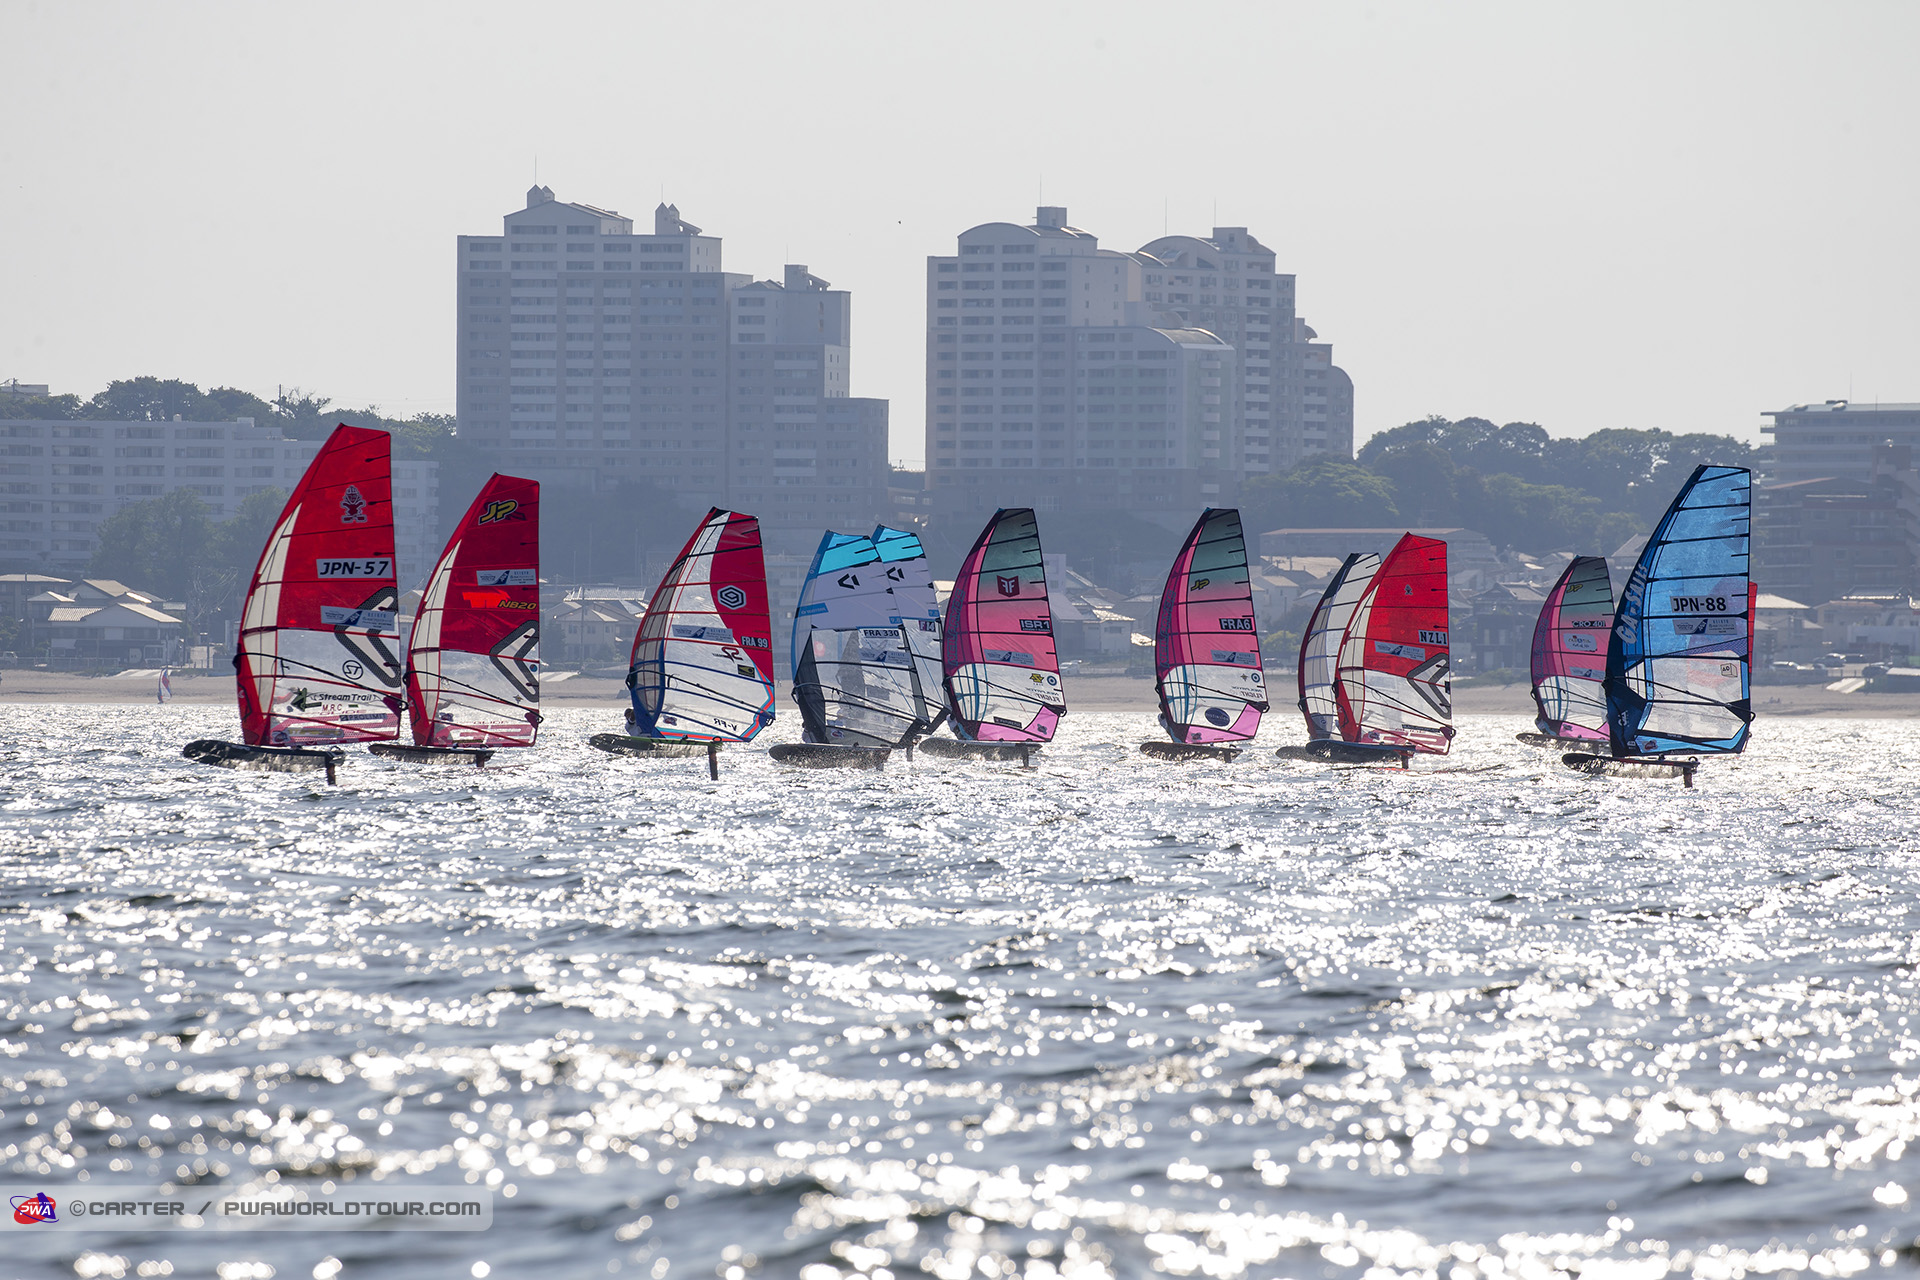 Racing underway in Yokosuka